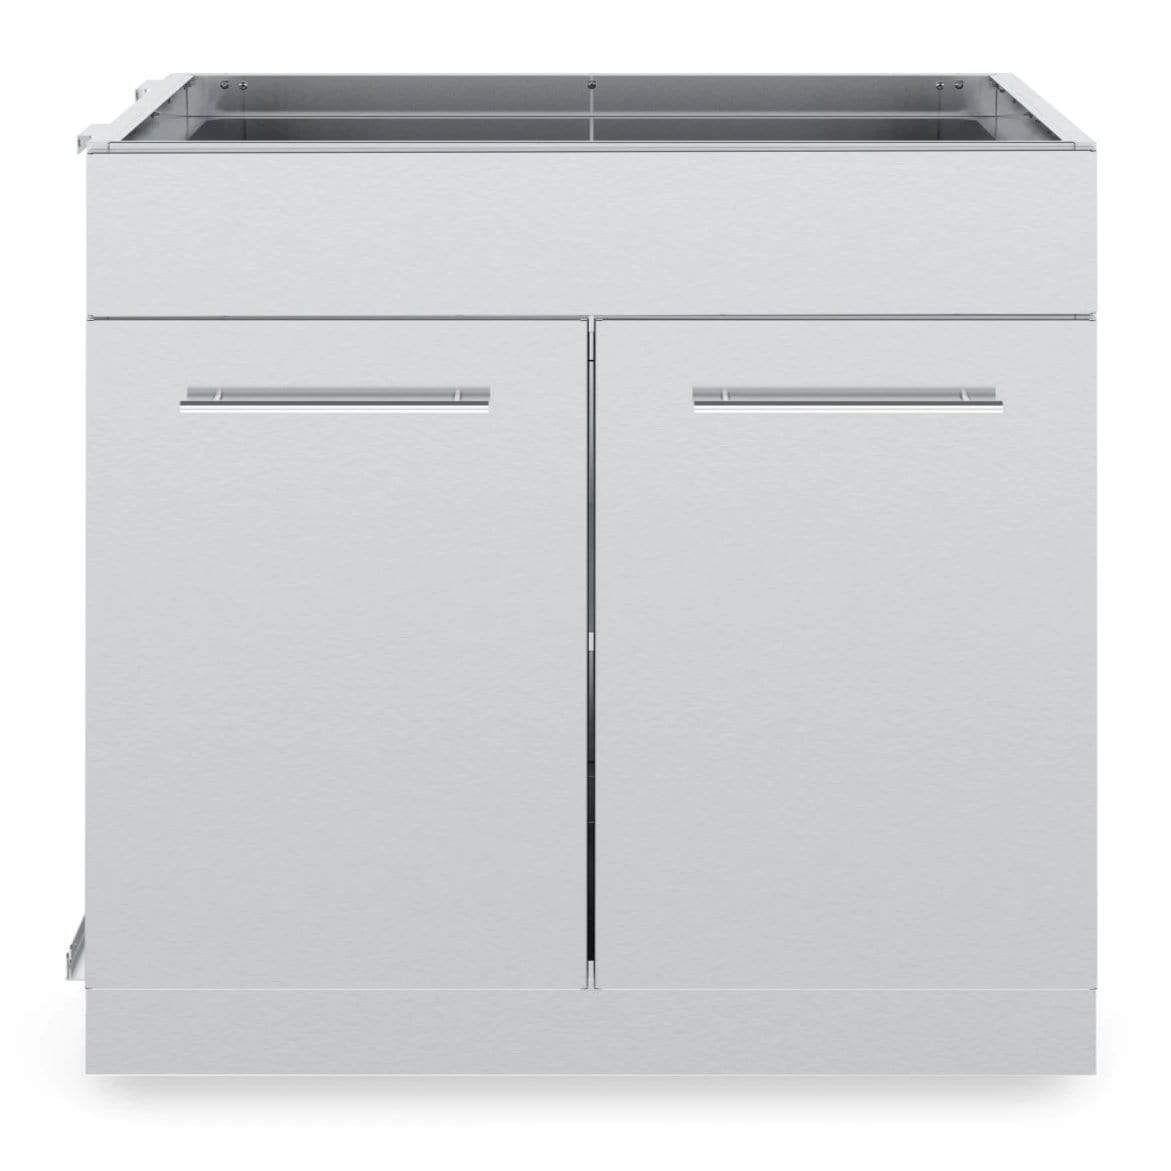 Broil King Stainless Steel 2 Door Cabinet Outdoor Kitchen System 804200